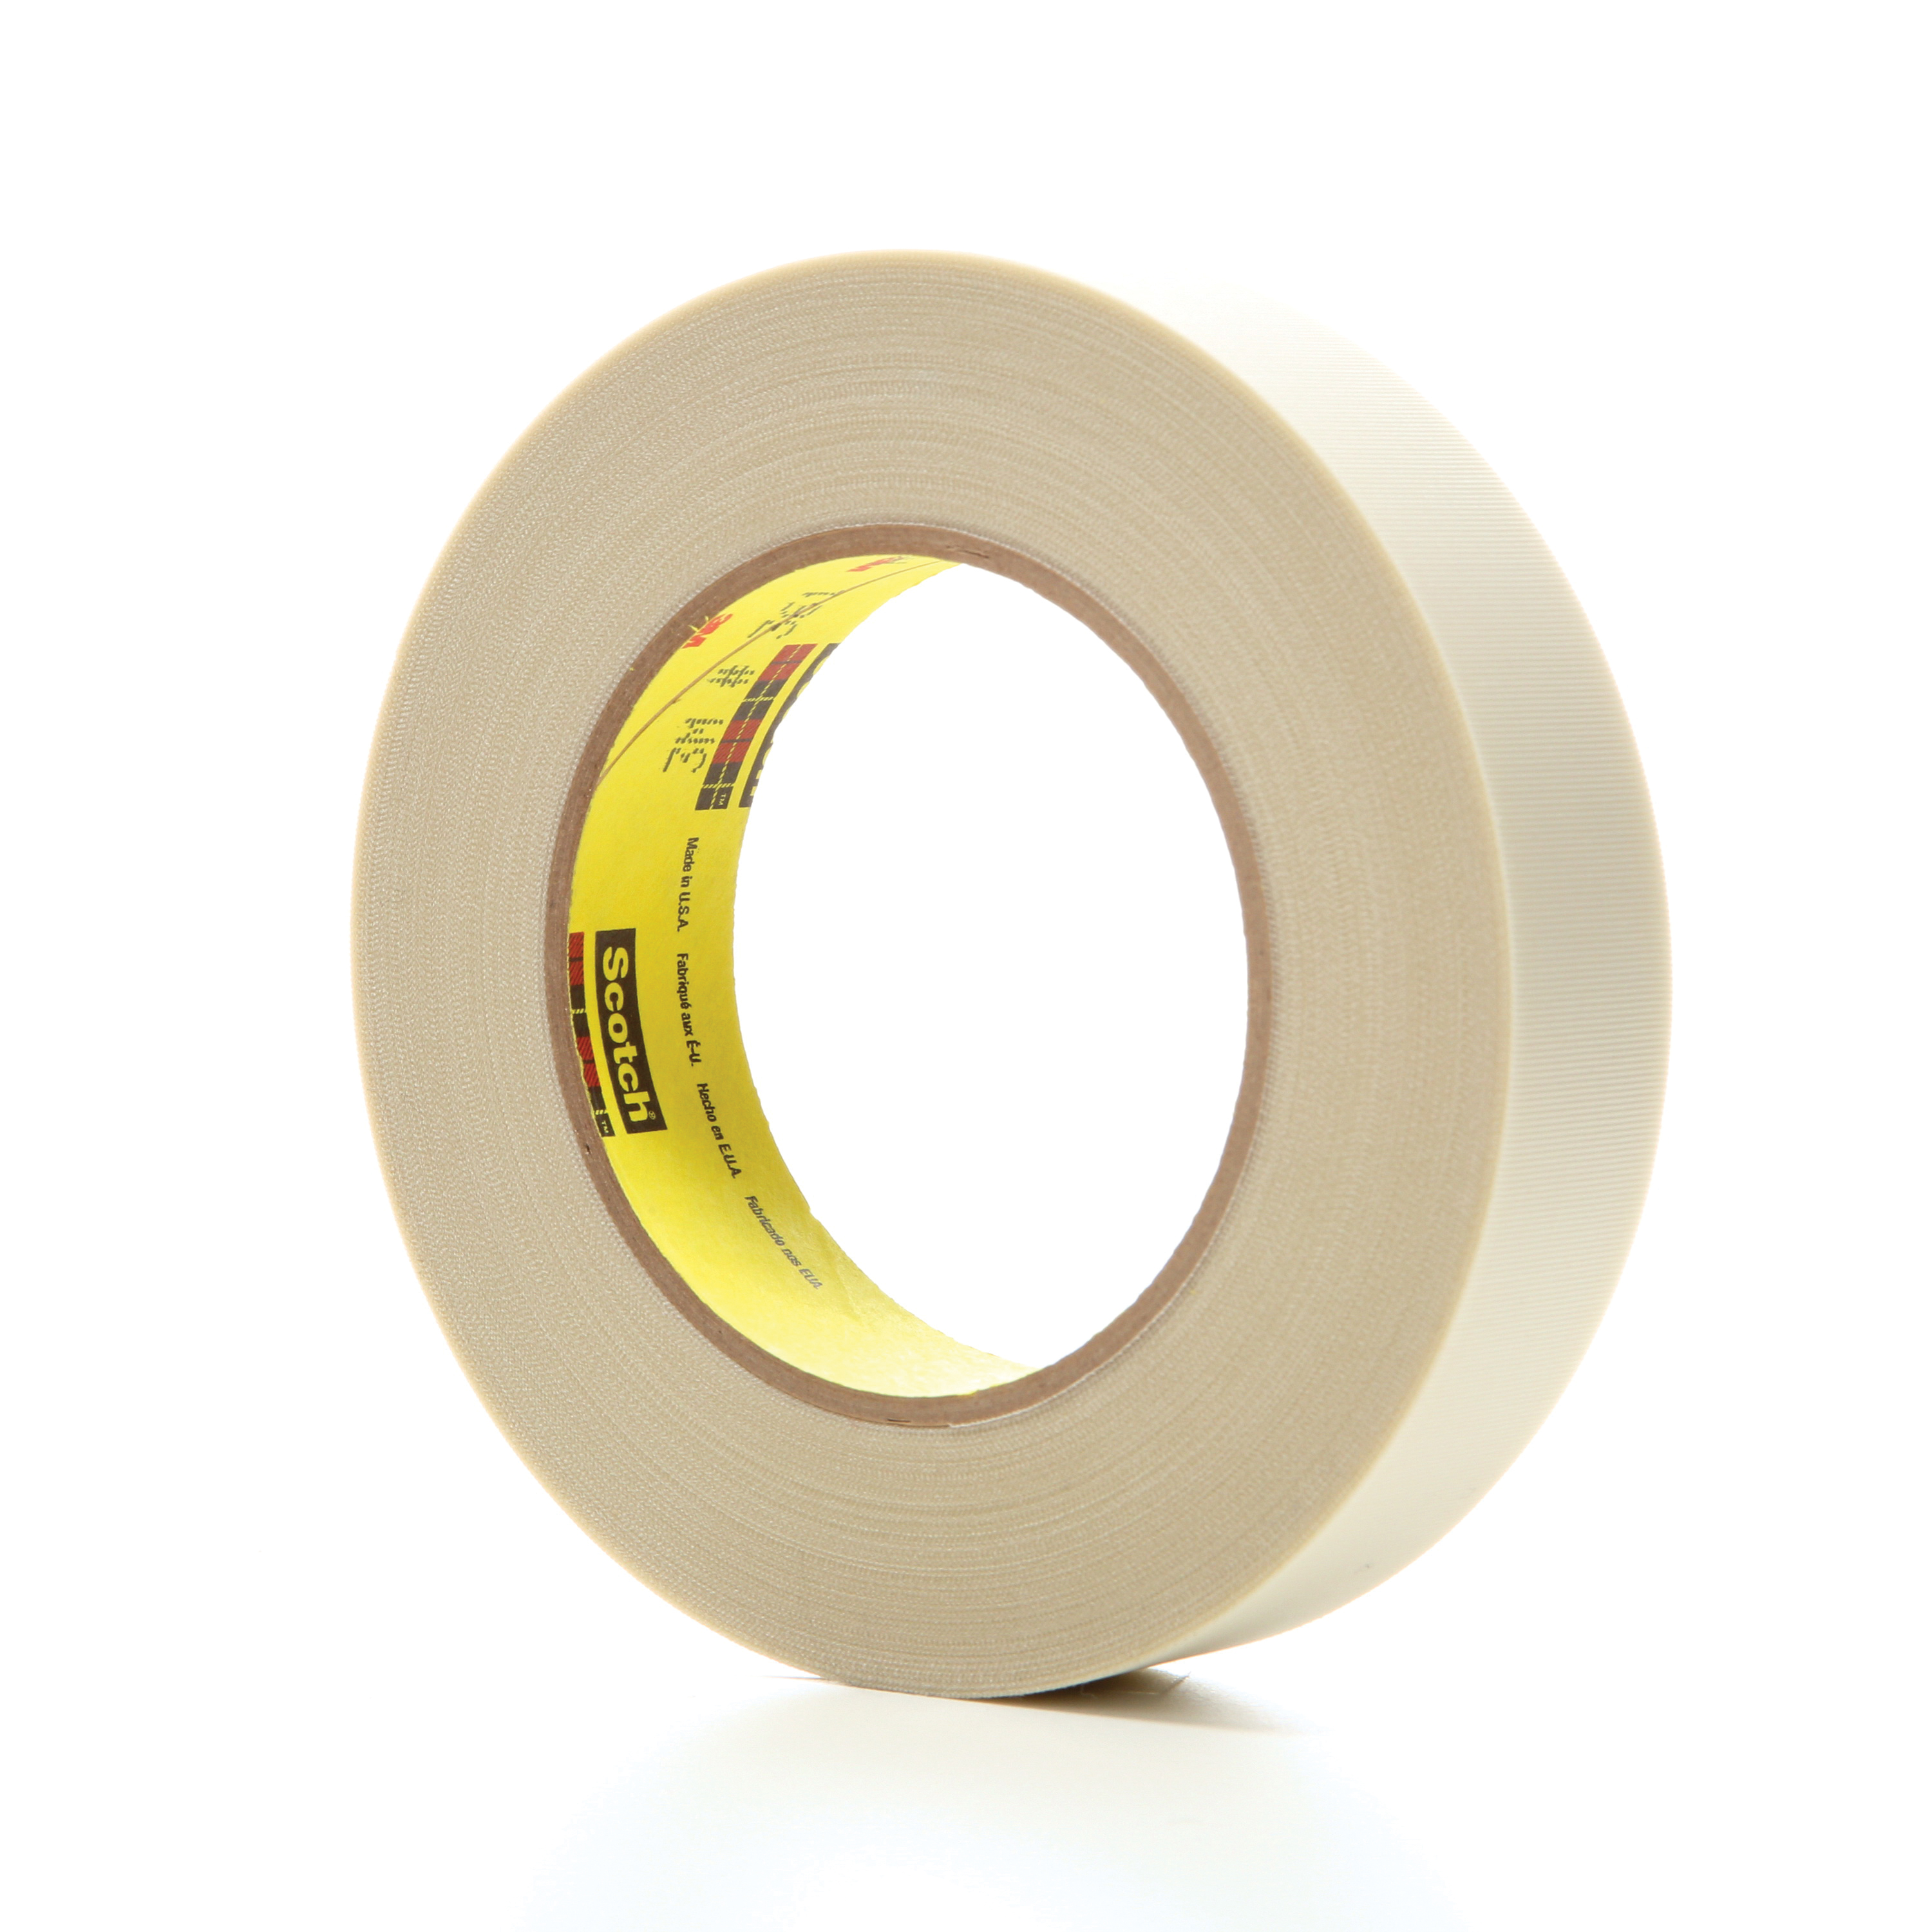 3M™ 021200-03017 Cloth Tape, 60 yd L x 1 in W, 6.4 mil THK, Silicone Adhesive, Glass Cloth Backing, White